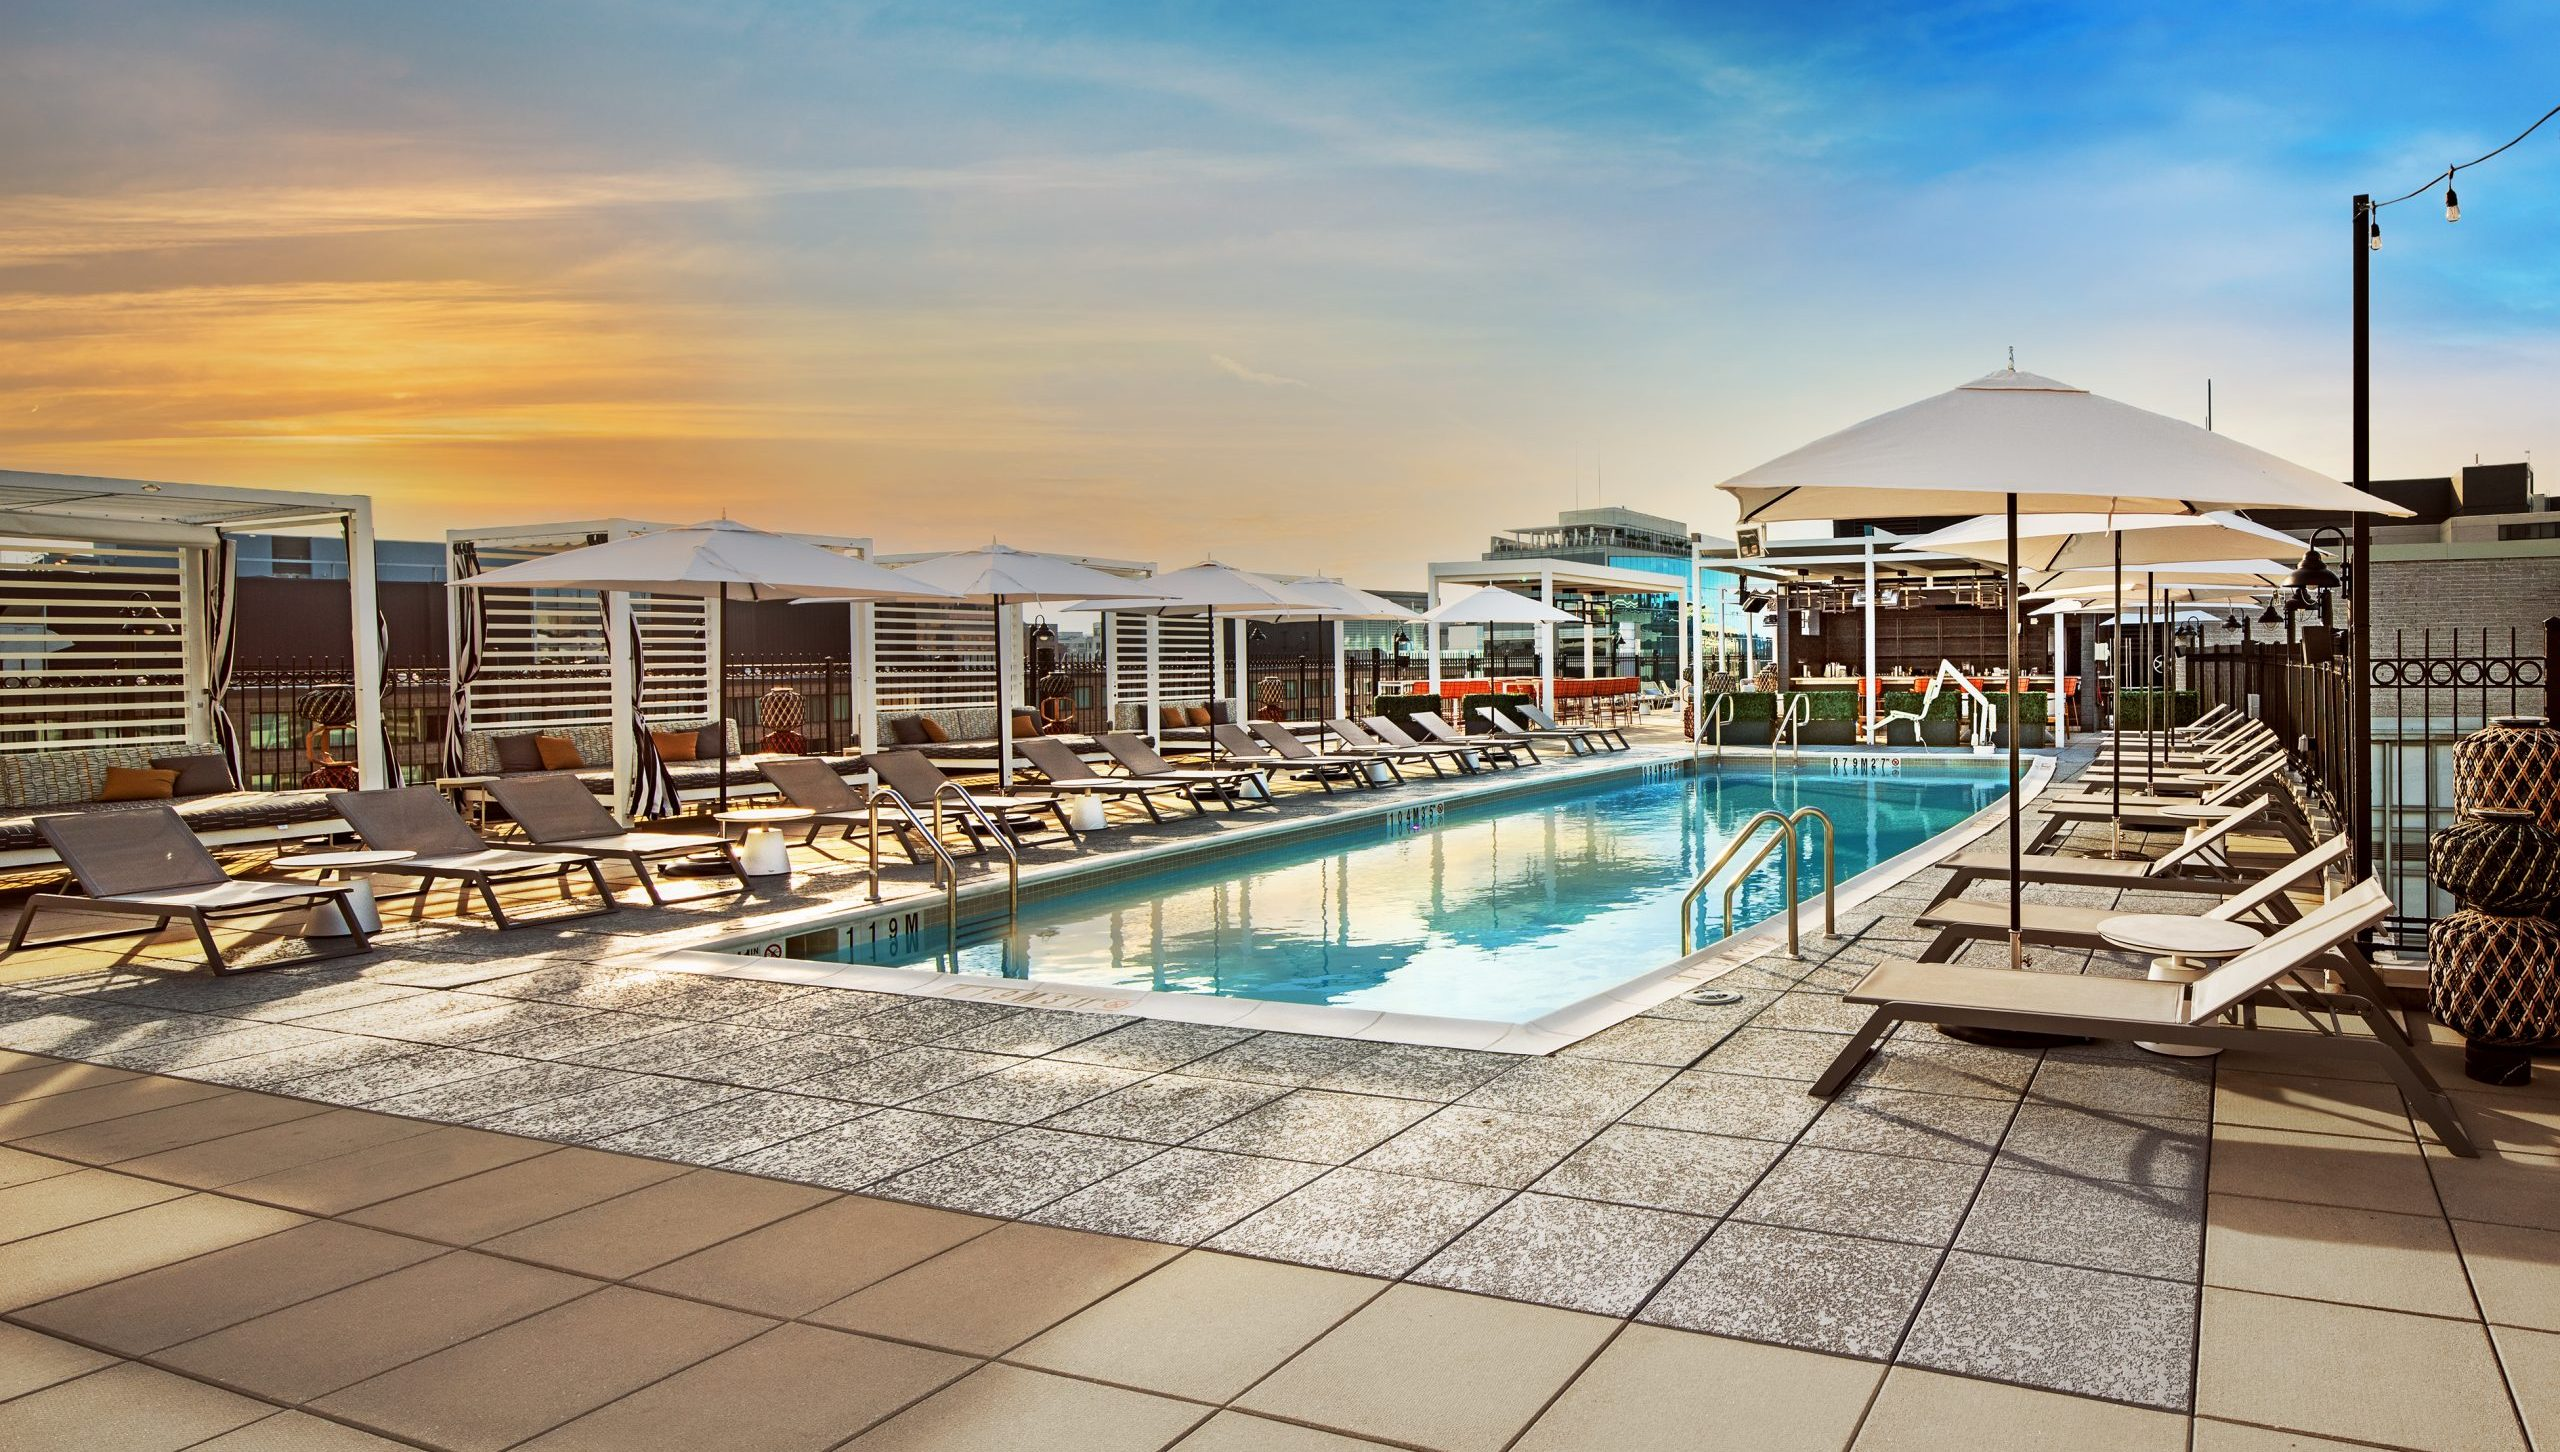 Capitol Hill Hotel's Deck 11 Features Large Pool, Great Views